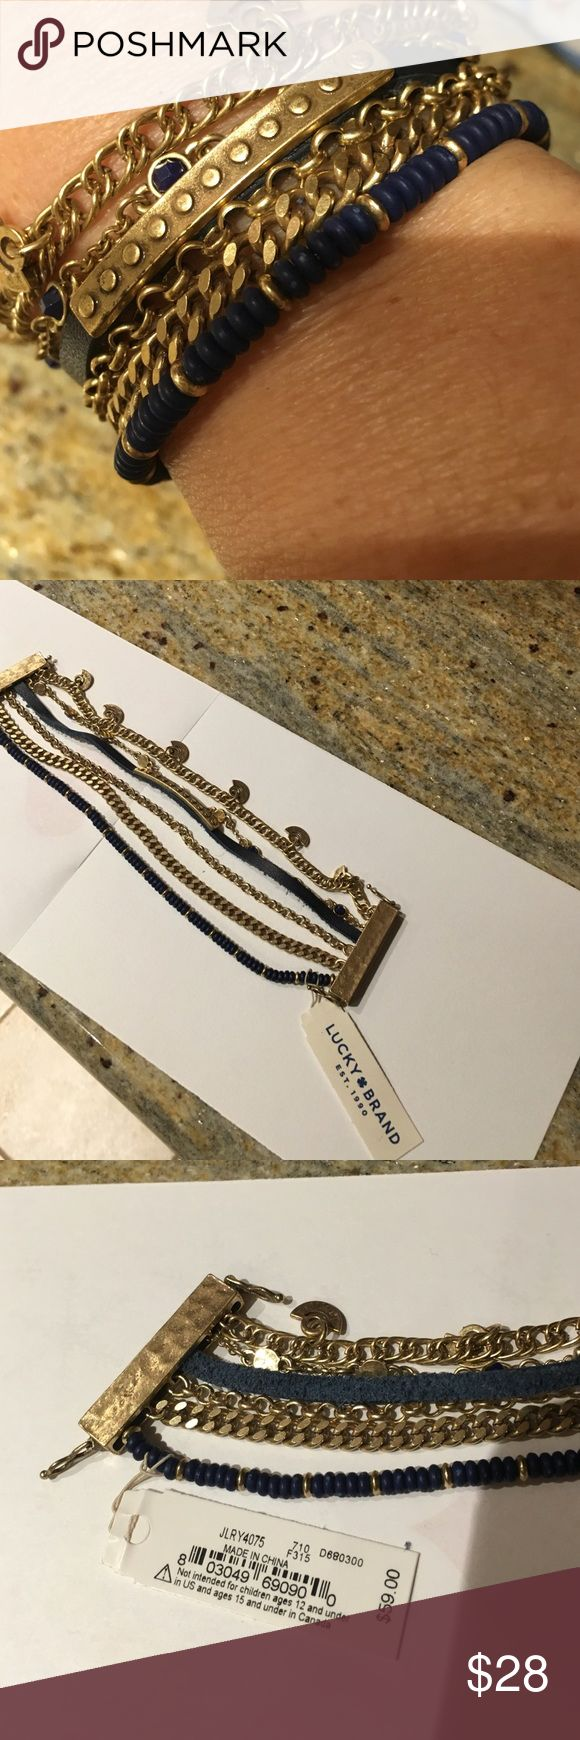 Lucky brand multi strand bracelet blue and gold Lucky brand Lucky Layers multi strand bracelet with magnetic closures and two safety  latches. Colors are gold tone and blue beads with blue leather and little blue glass stones. New with tag. Nice gift that will look great with jeans casual and funky Lucky Brand Jewelry Bracelets